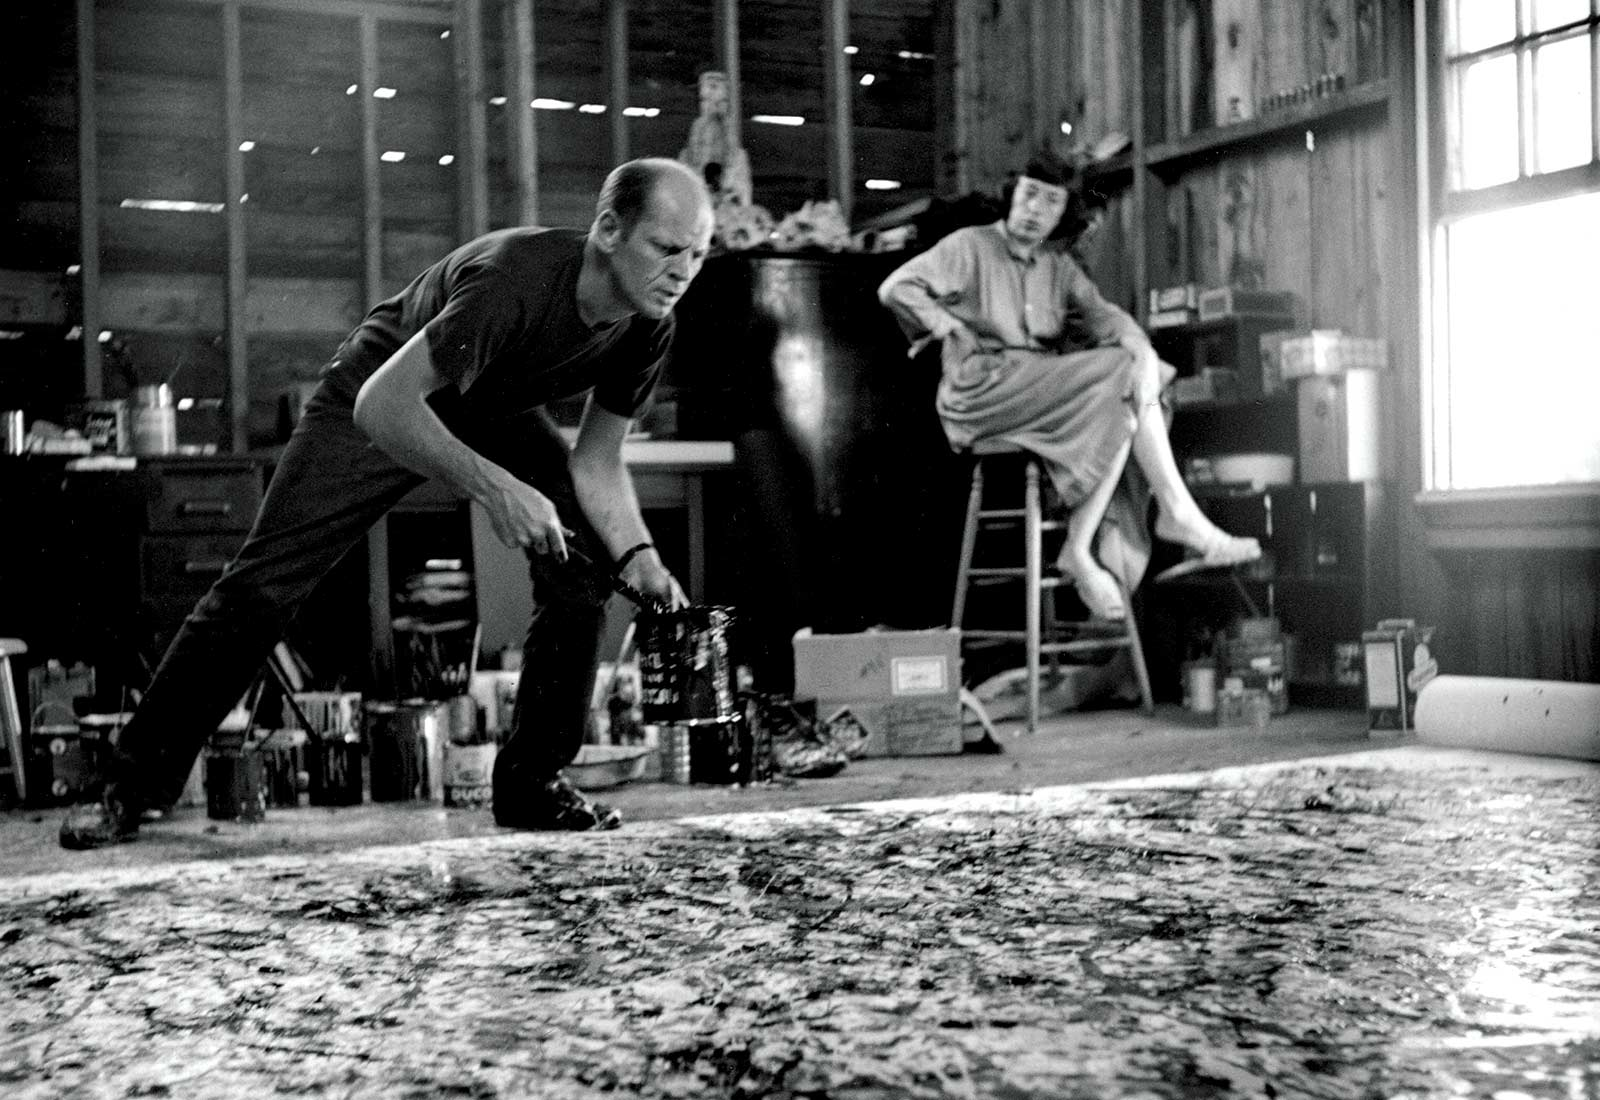 Jackson Pollock painting One: Number 31, 1950, with Lee Krasner observing.